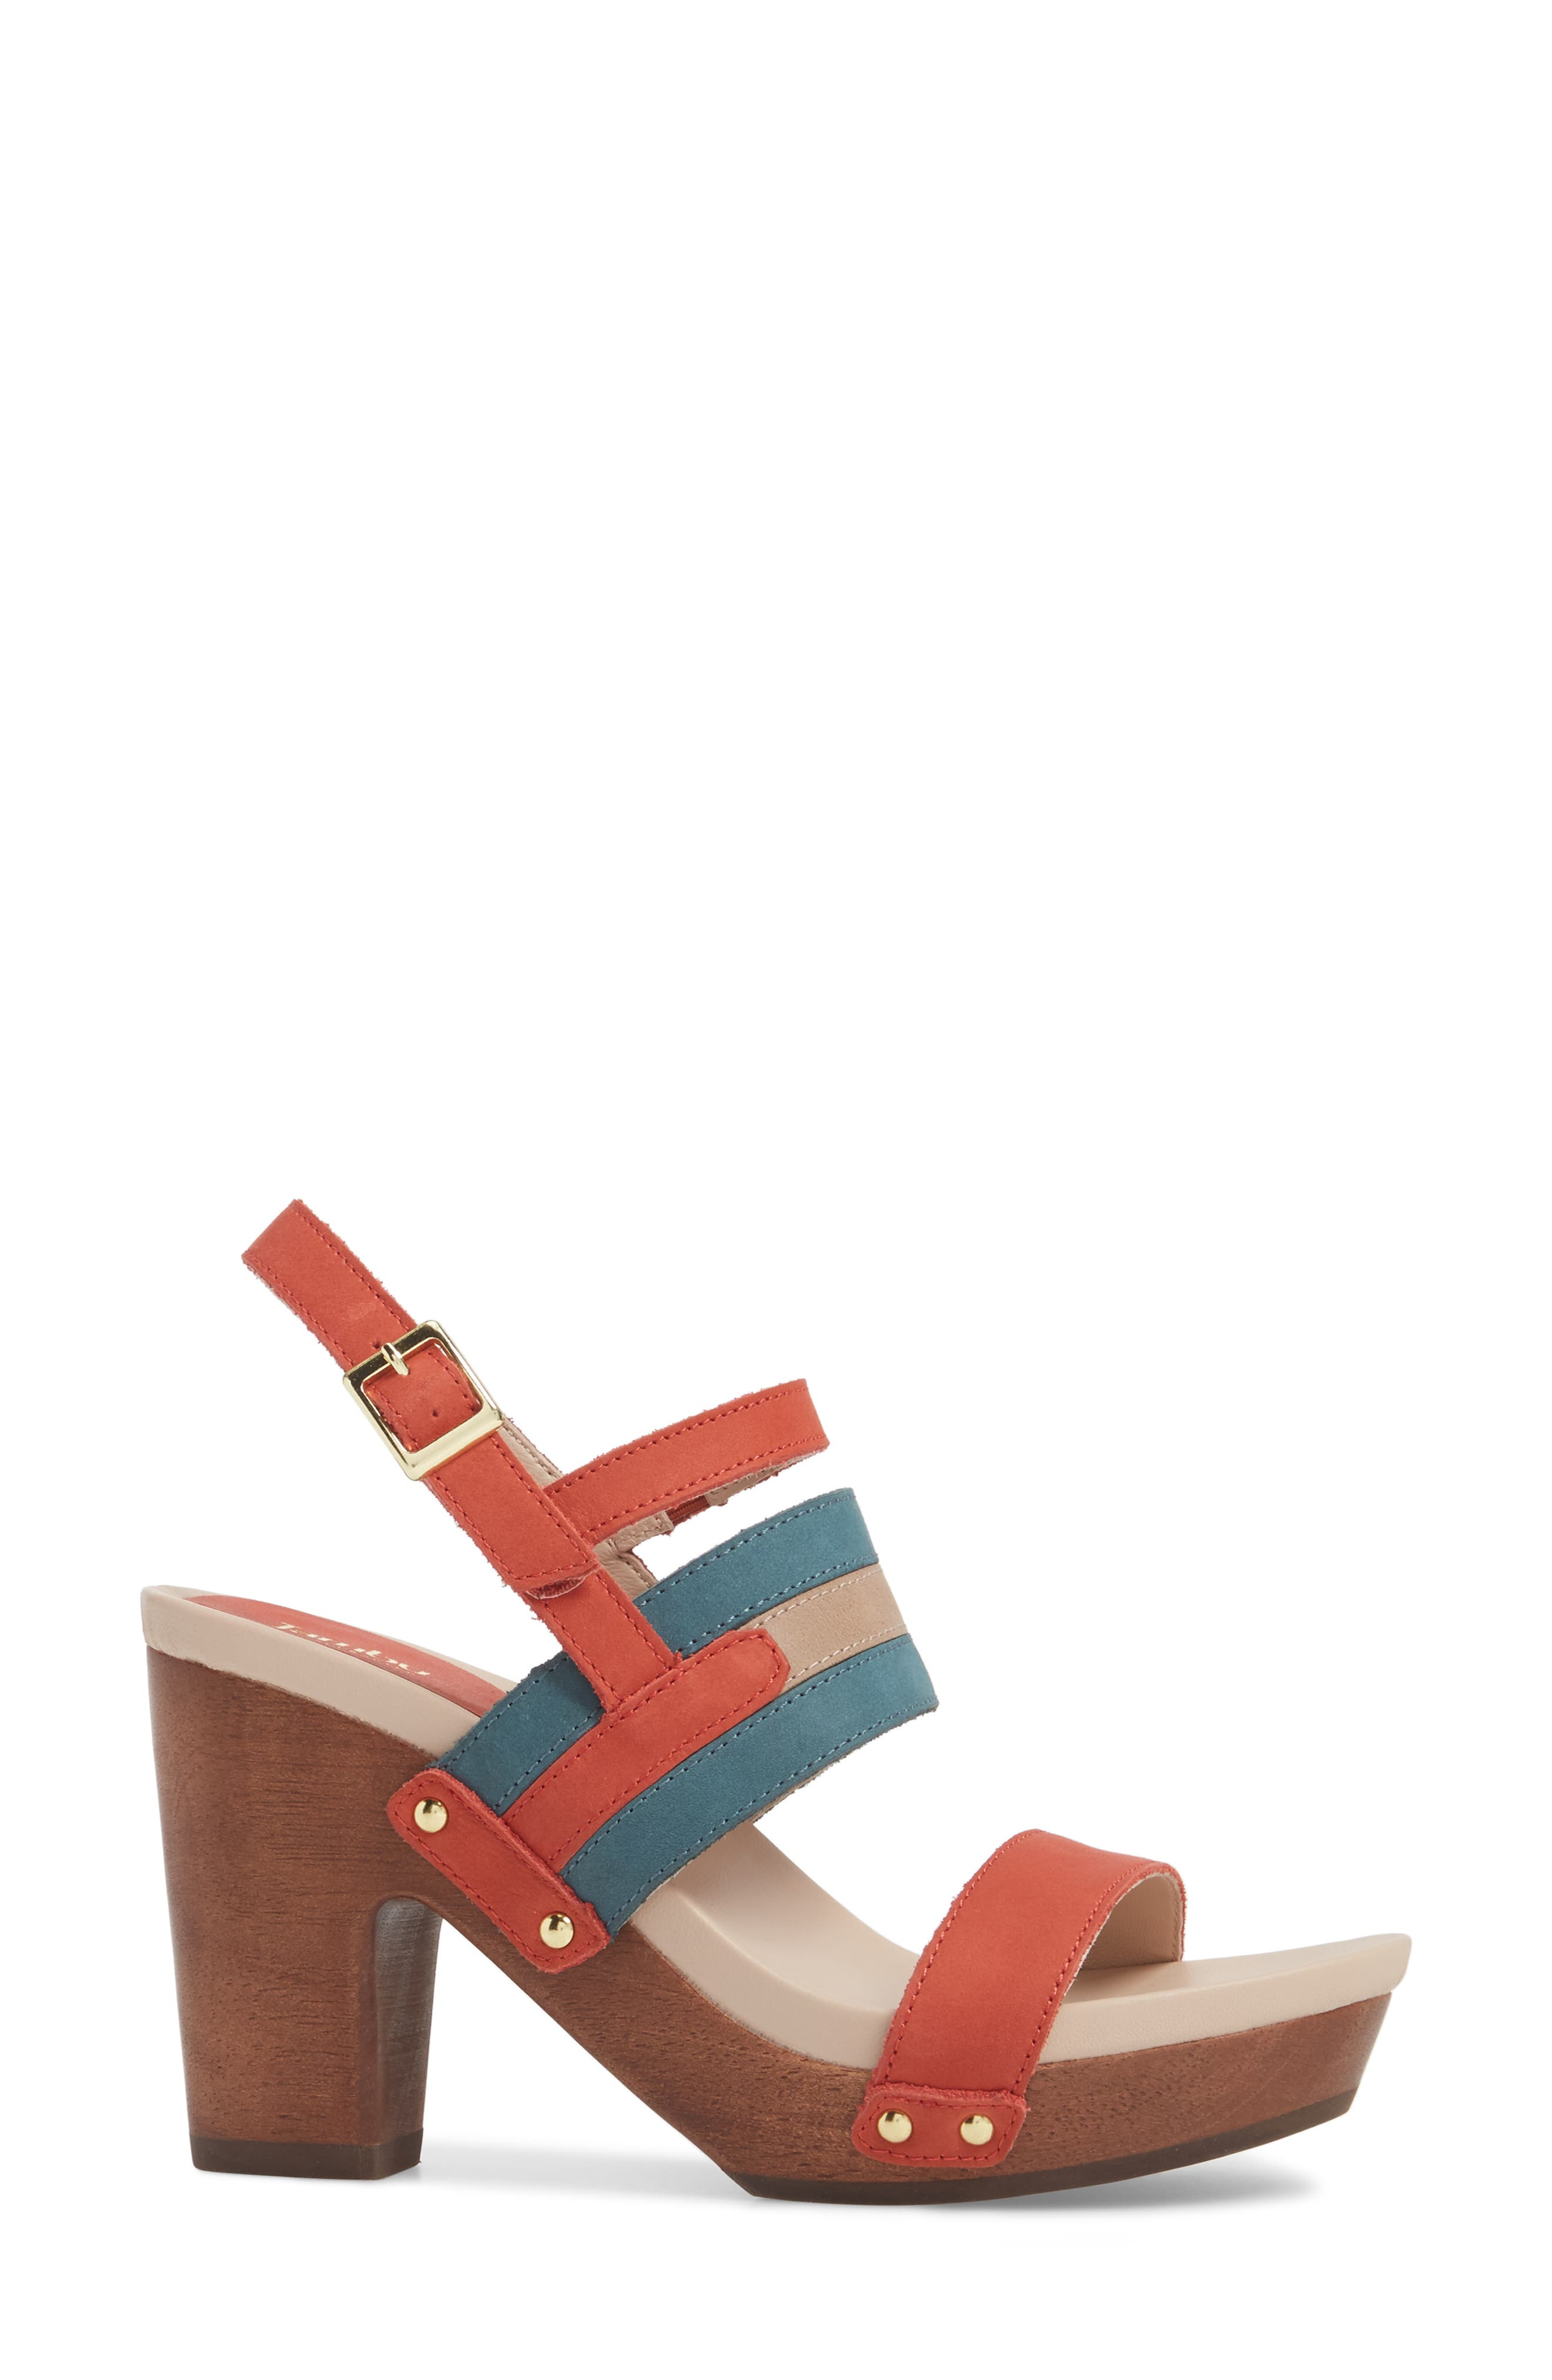 Viola Platform Sandal,                             Alternate thumbnail 3, color,                             Coral/ Teal Nubuck